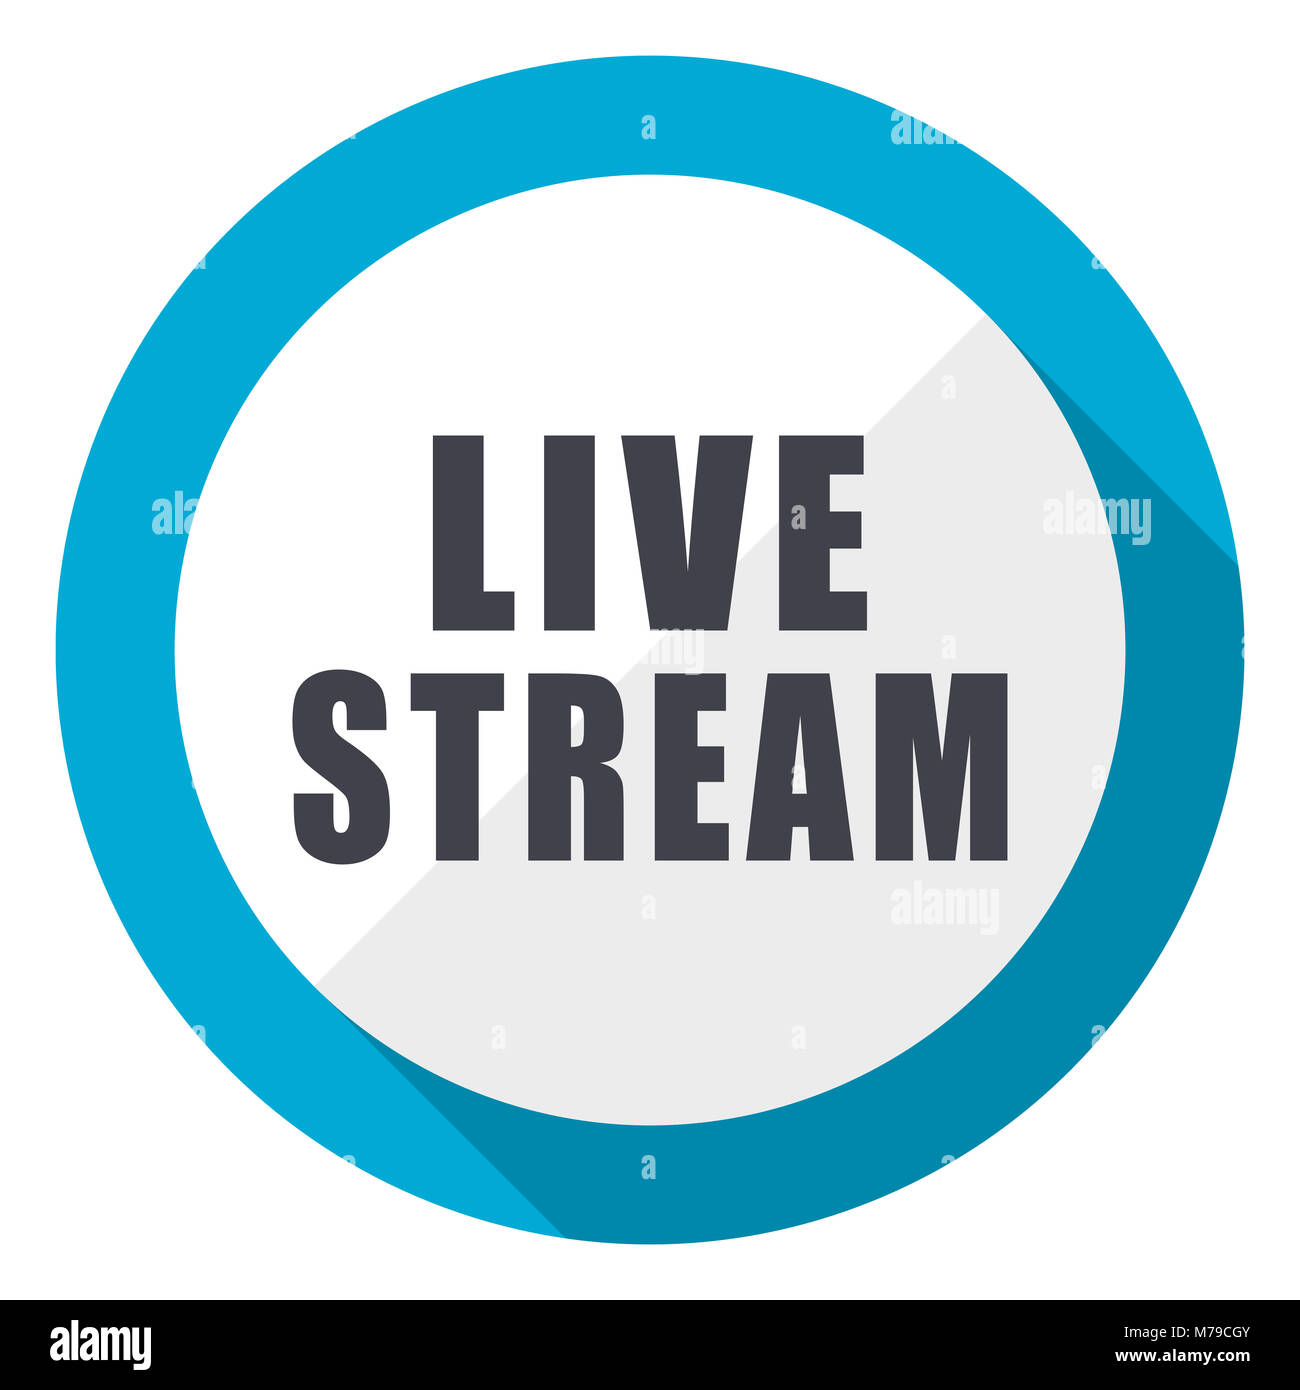 Live stream blue flat design web icon - Stock Image